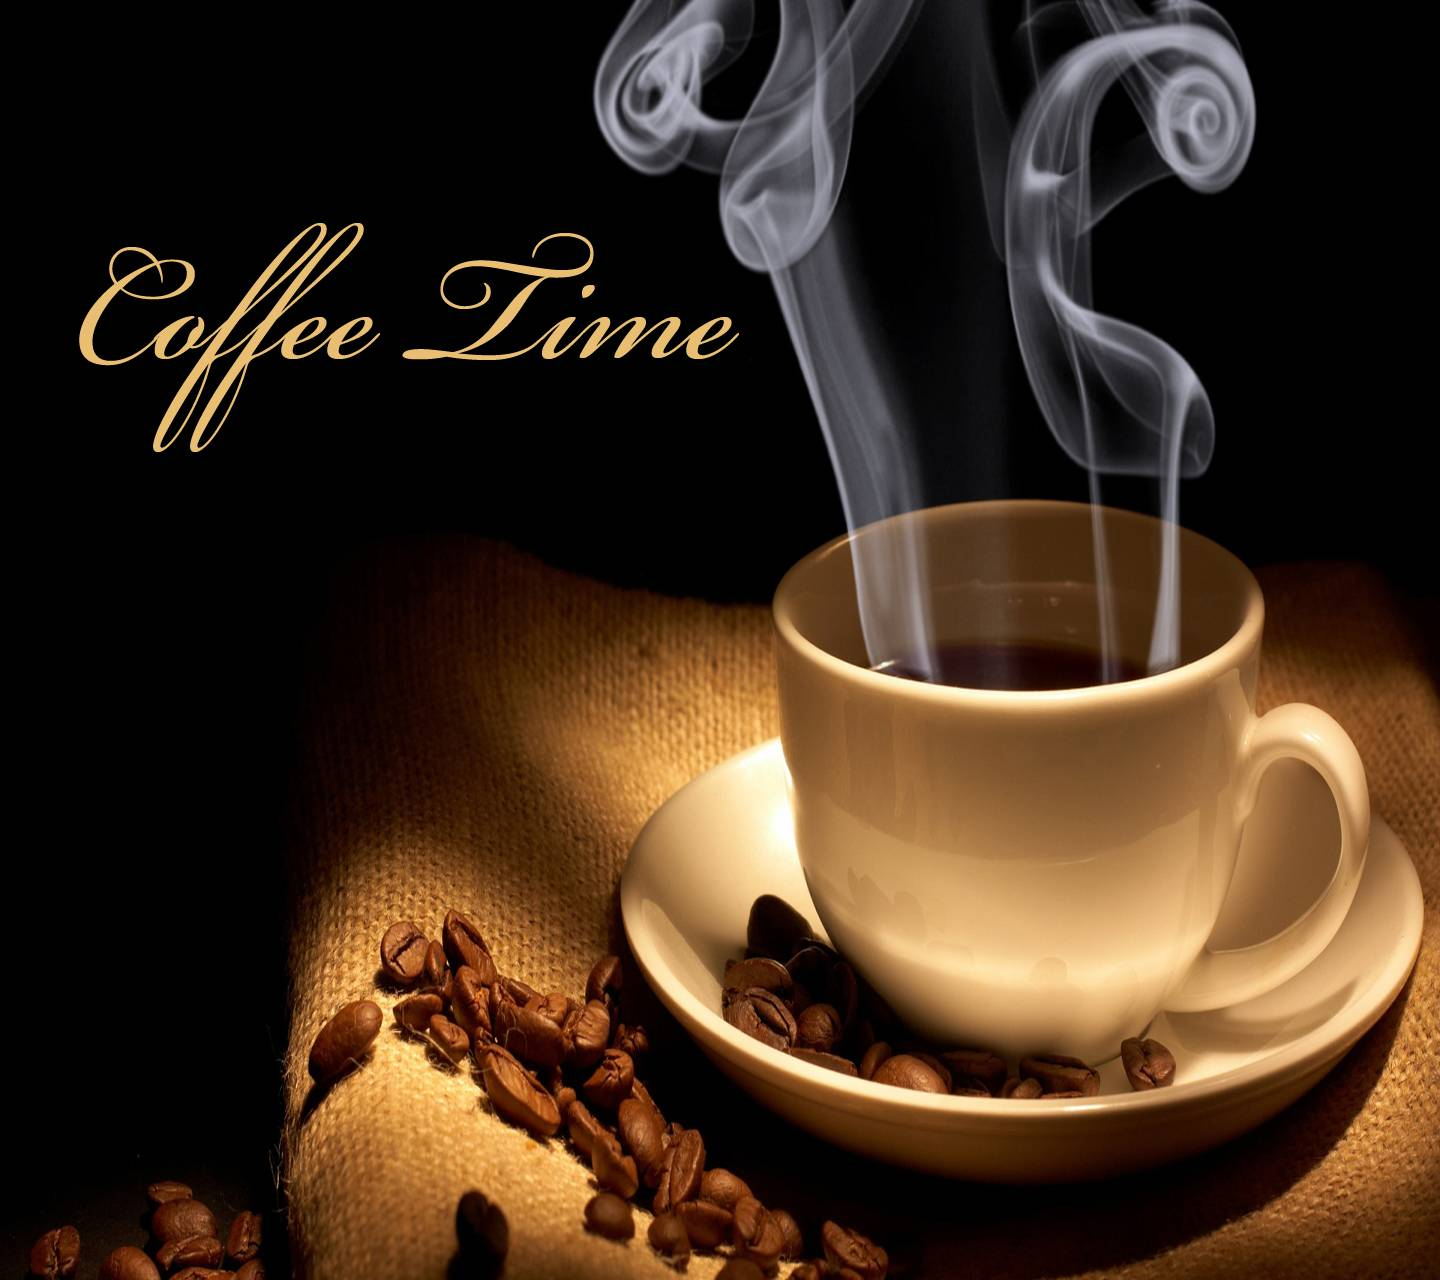 Coffee Time wallpaper by _Savanna_ - 15 - Free on ZEDGE™